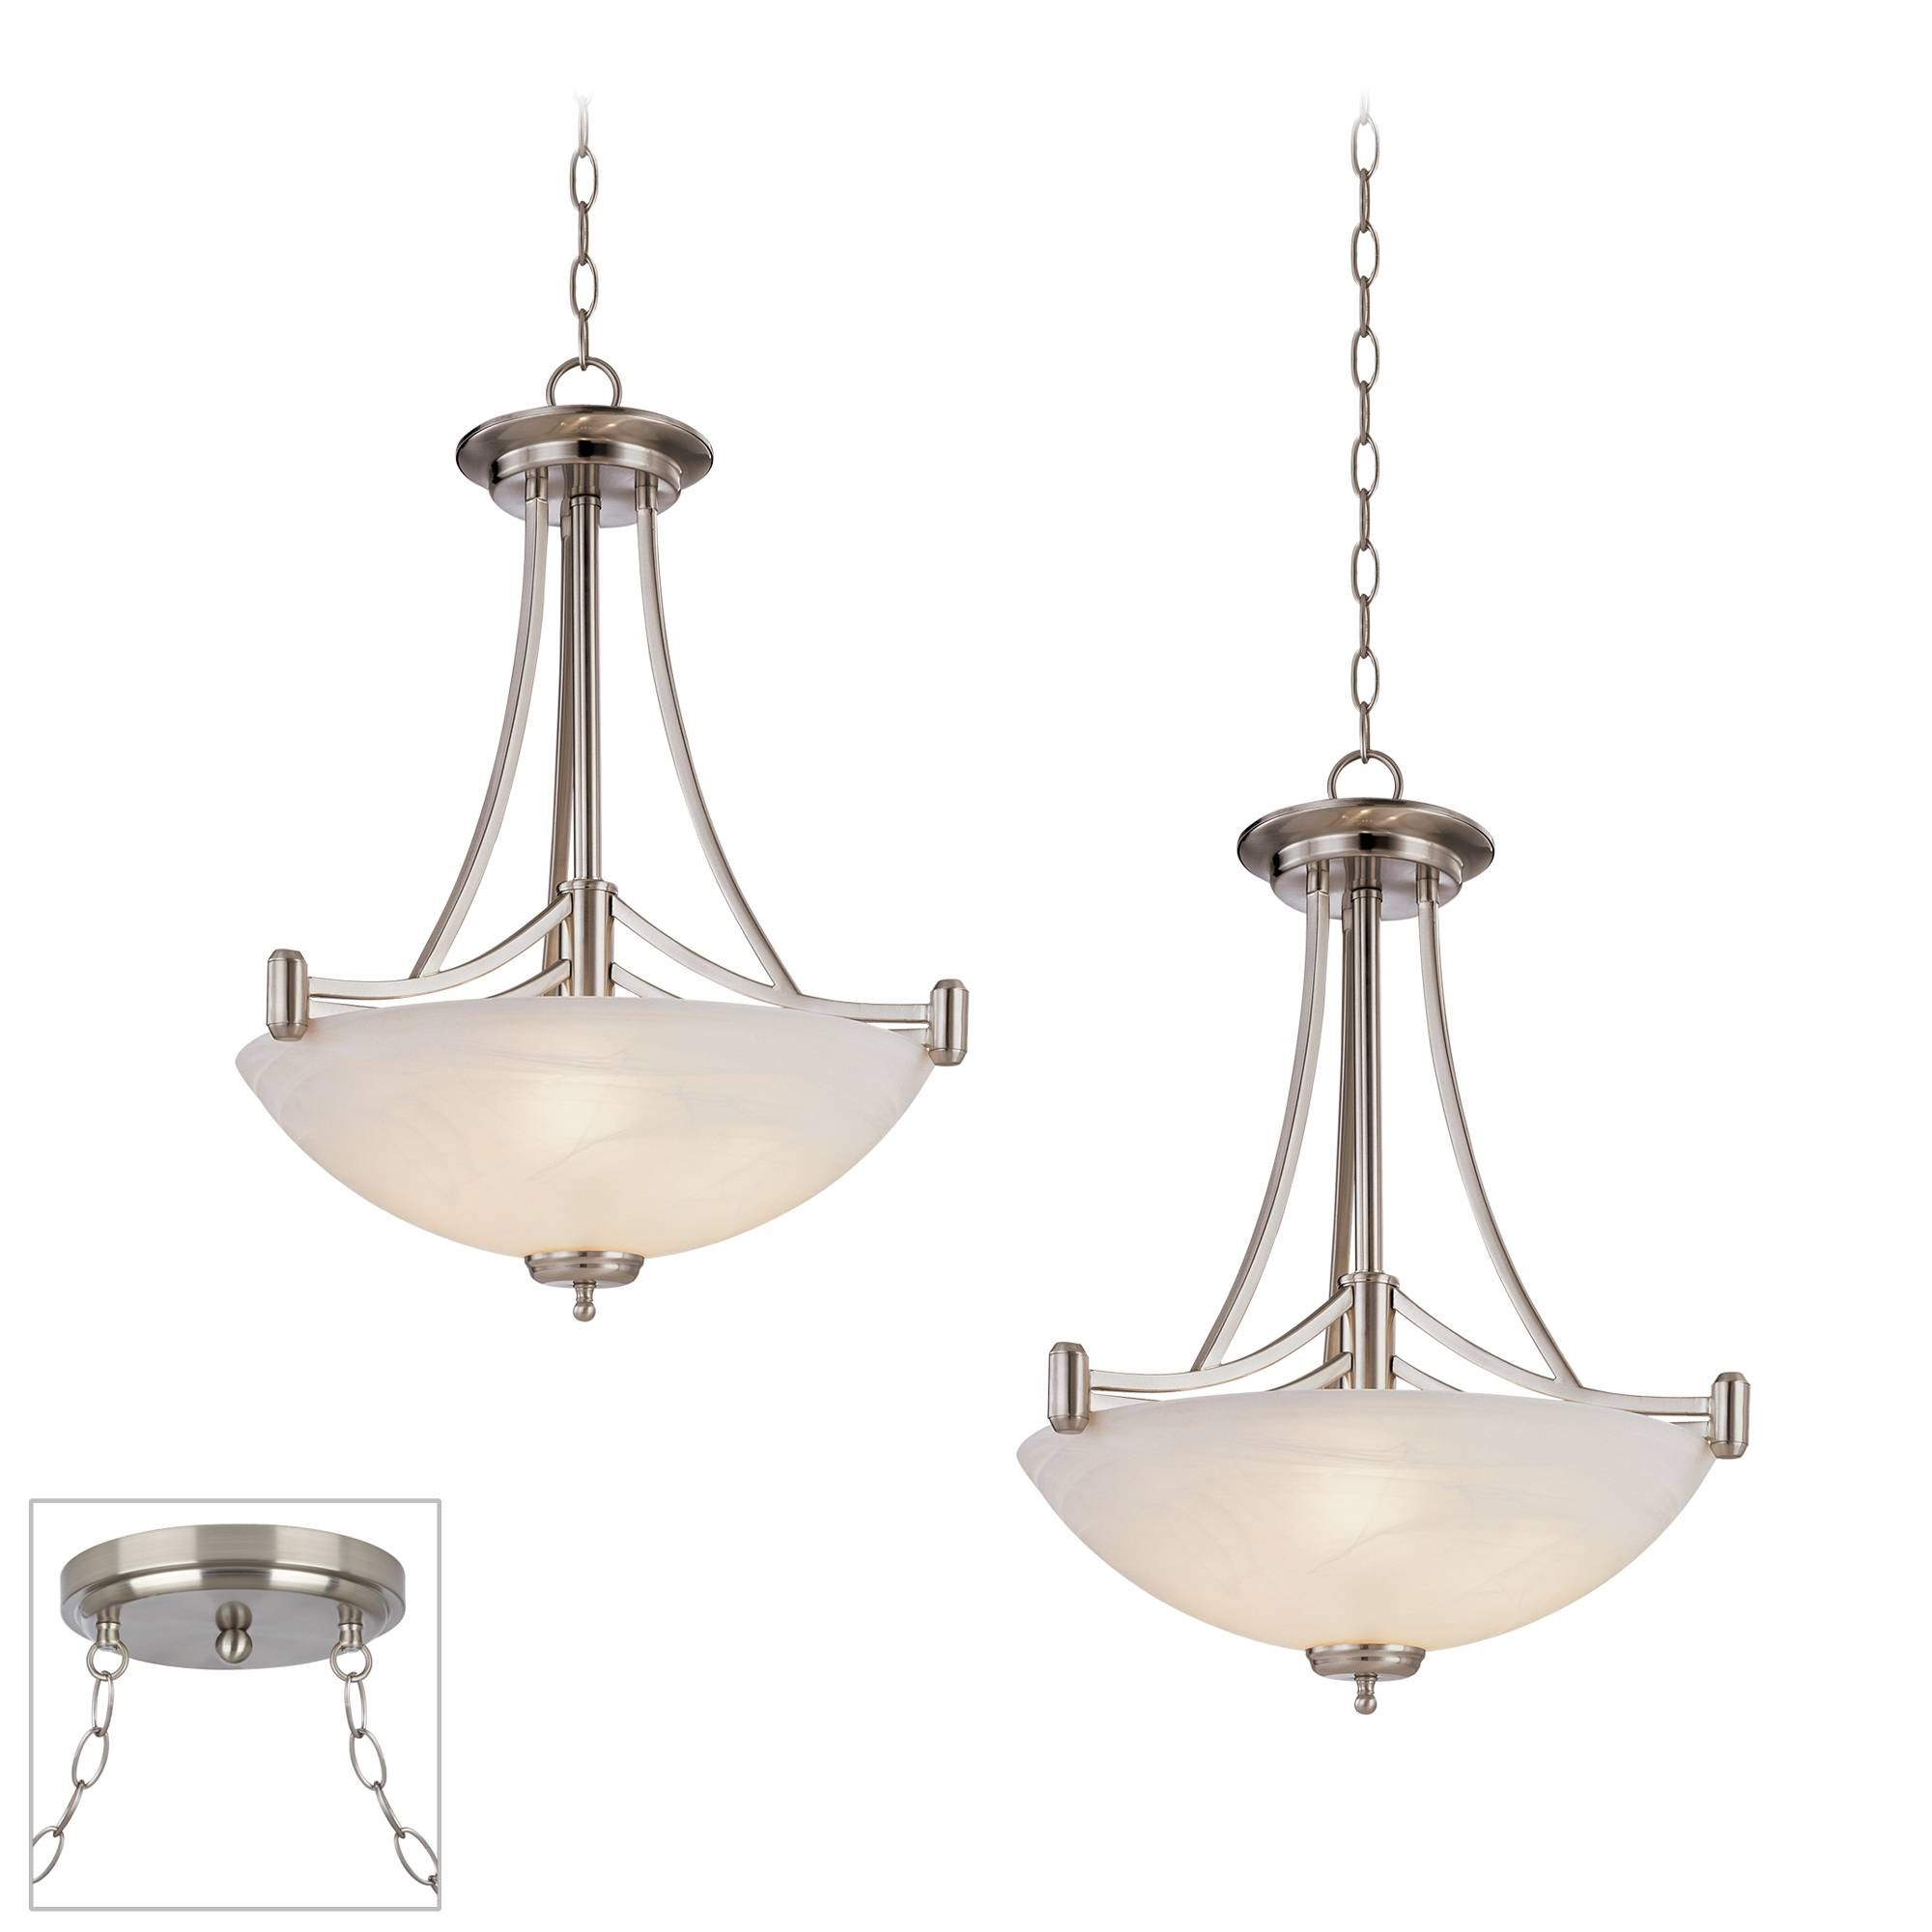 Kathy Ireland Deco Scale Brushed Steel 2 Light Swag Chandelier